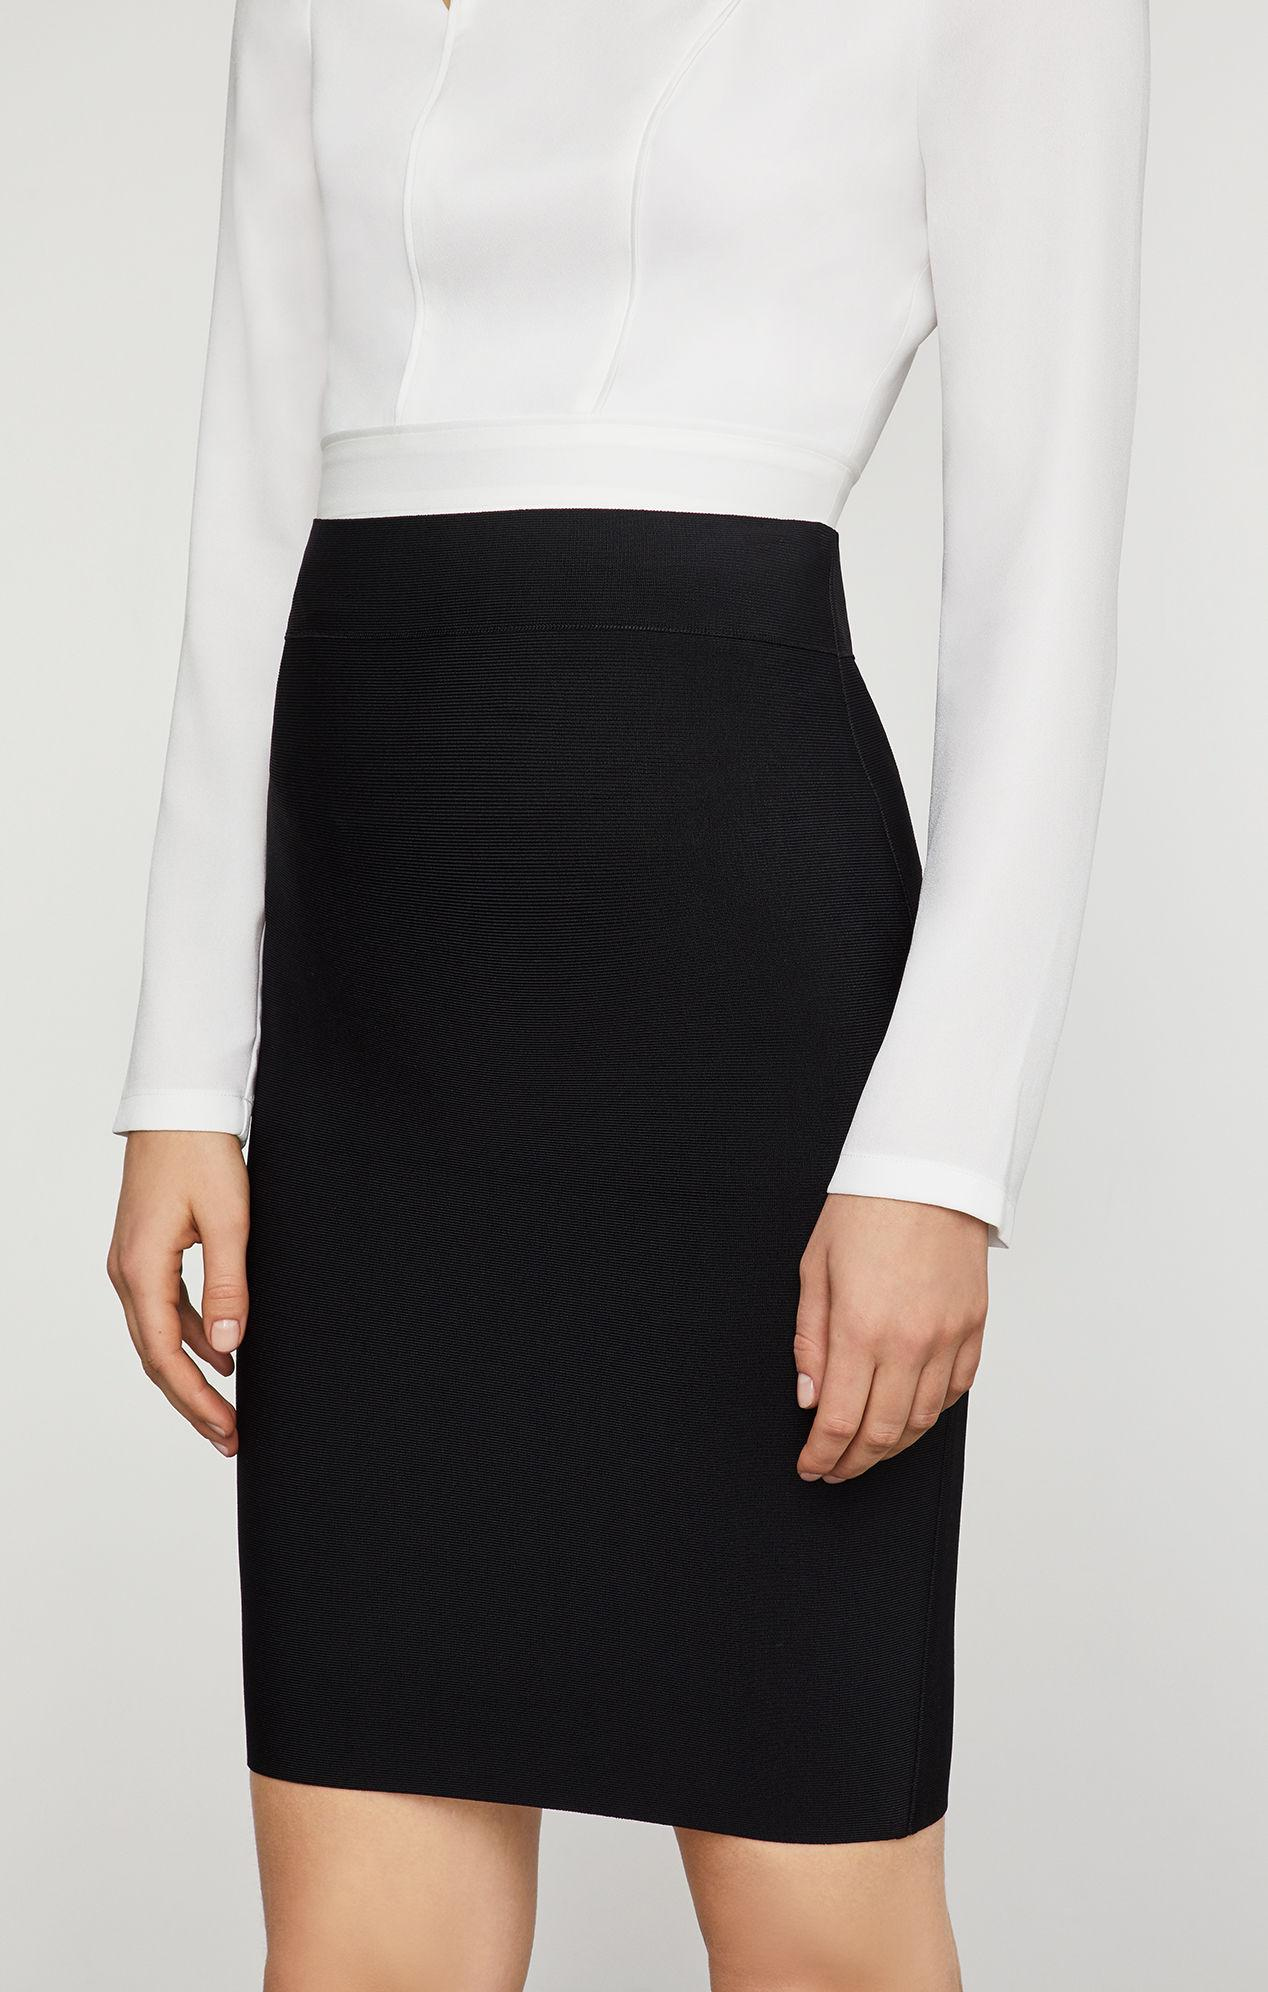 68f6976b6 BCBGMAXAZRIA - Black Bcbg Nathalia Pencil Skirt - Lyst. View fullscreen